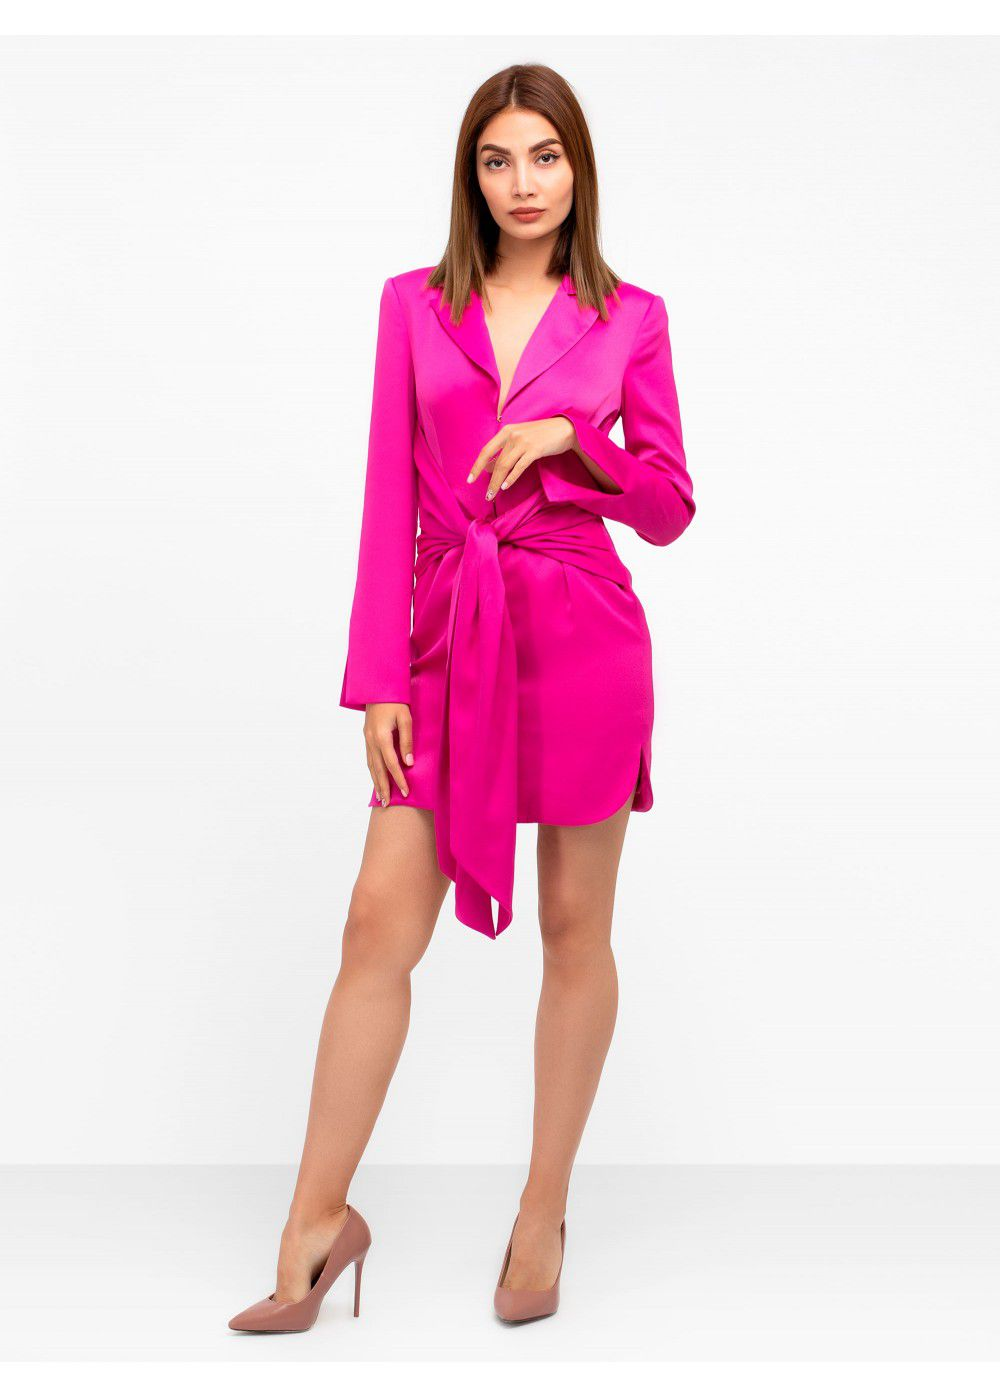 Misha Collection Teagan Fuschia Mini Dress